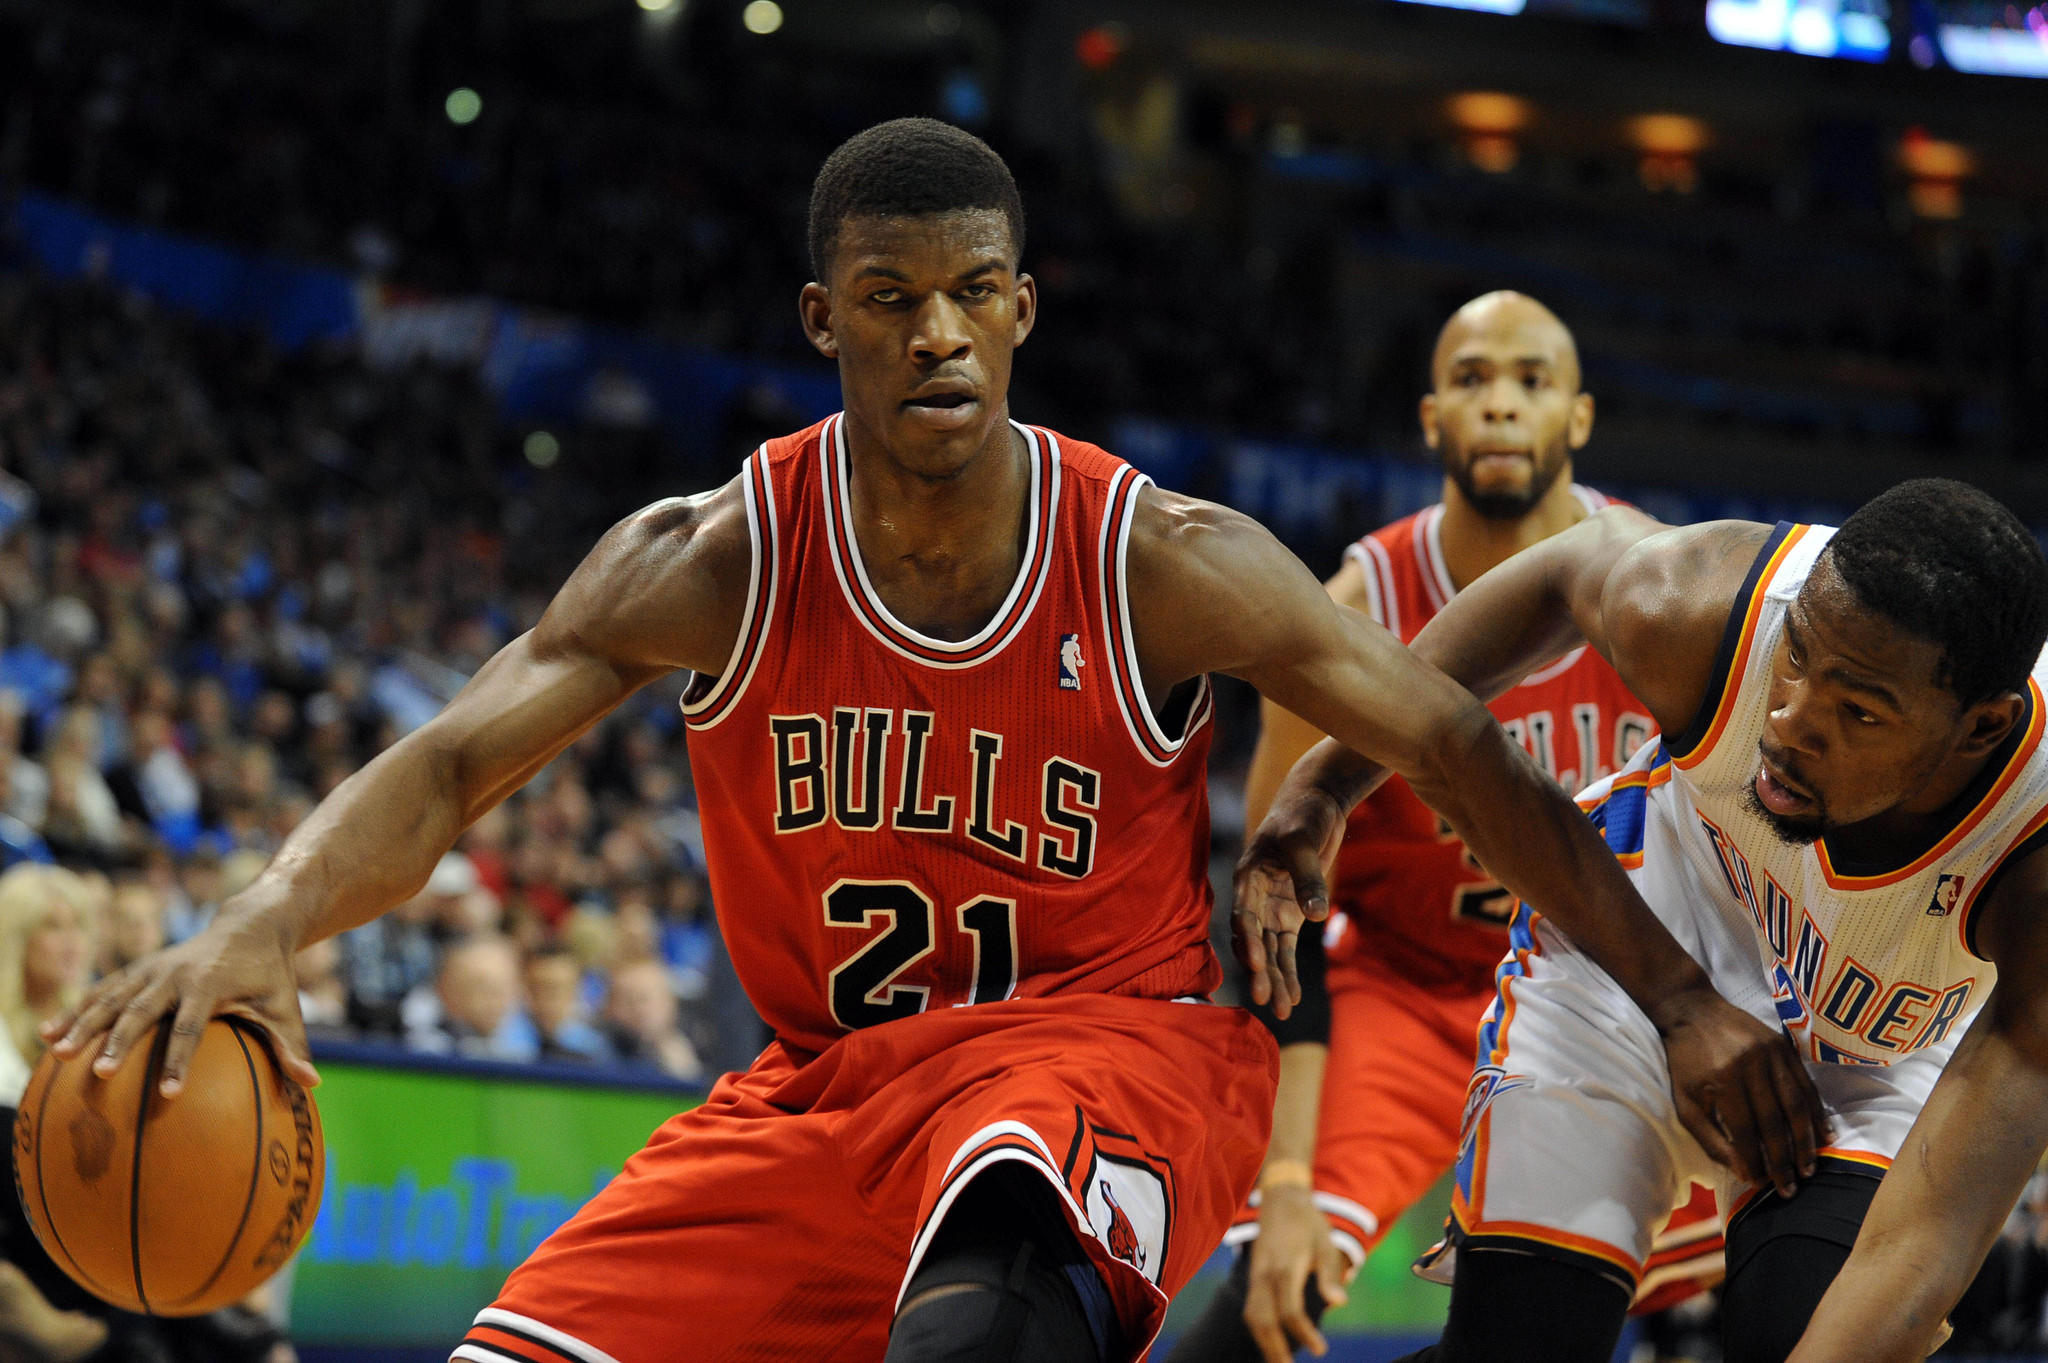 Jimmy Butler drives on Kevin Durant during the second quarter at Chesapeake Energy Arena.